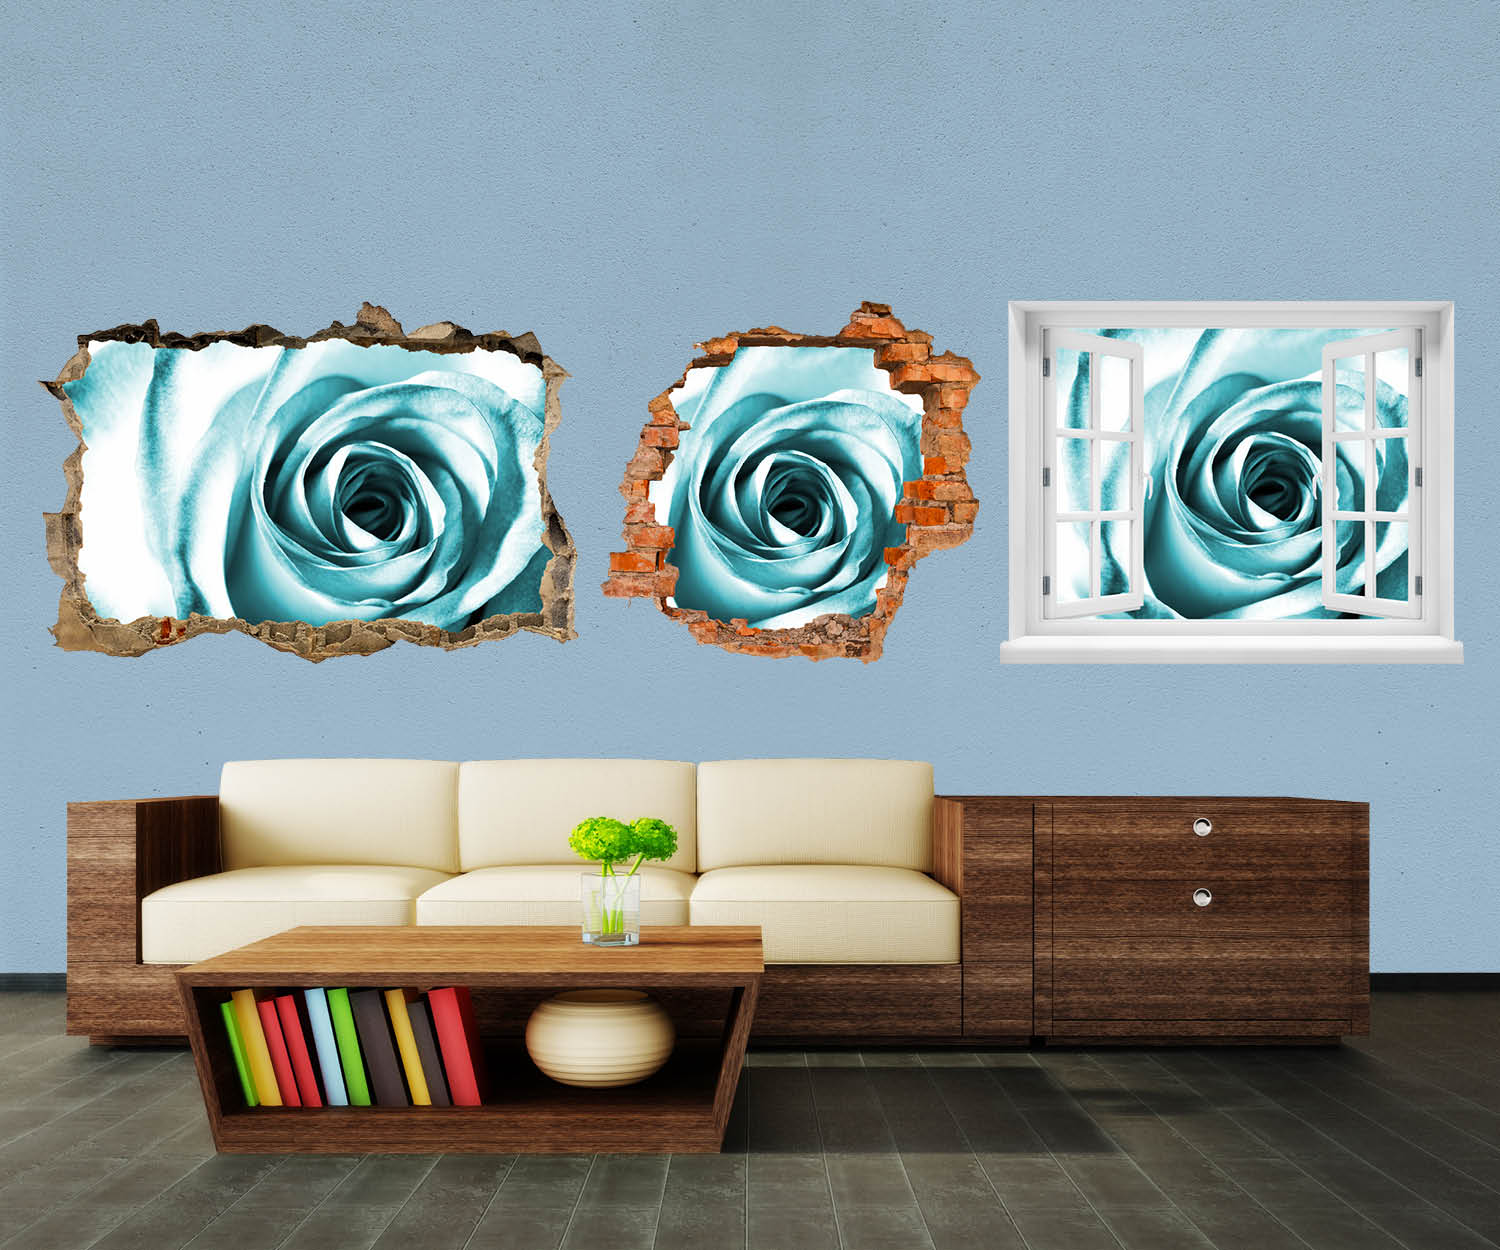 wandmotiv24 3d wandsticker blaue rose bl te aufkleber mauerdurchbruch m0227 3d wandsticker. Black Bedroom Furniture Sets. Home Design Ideas